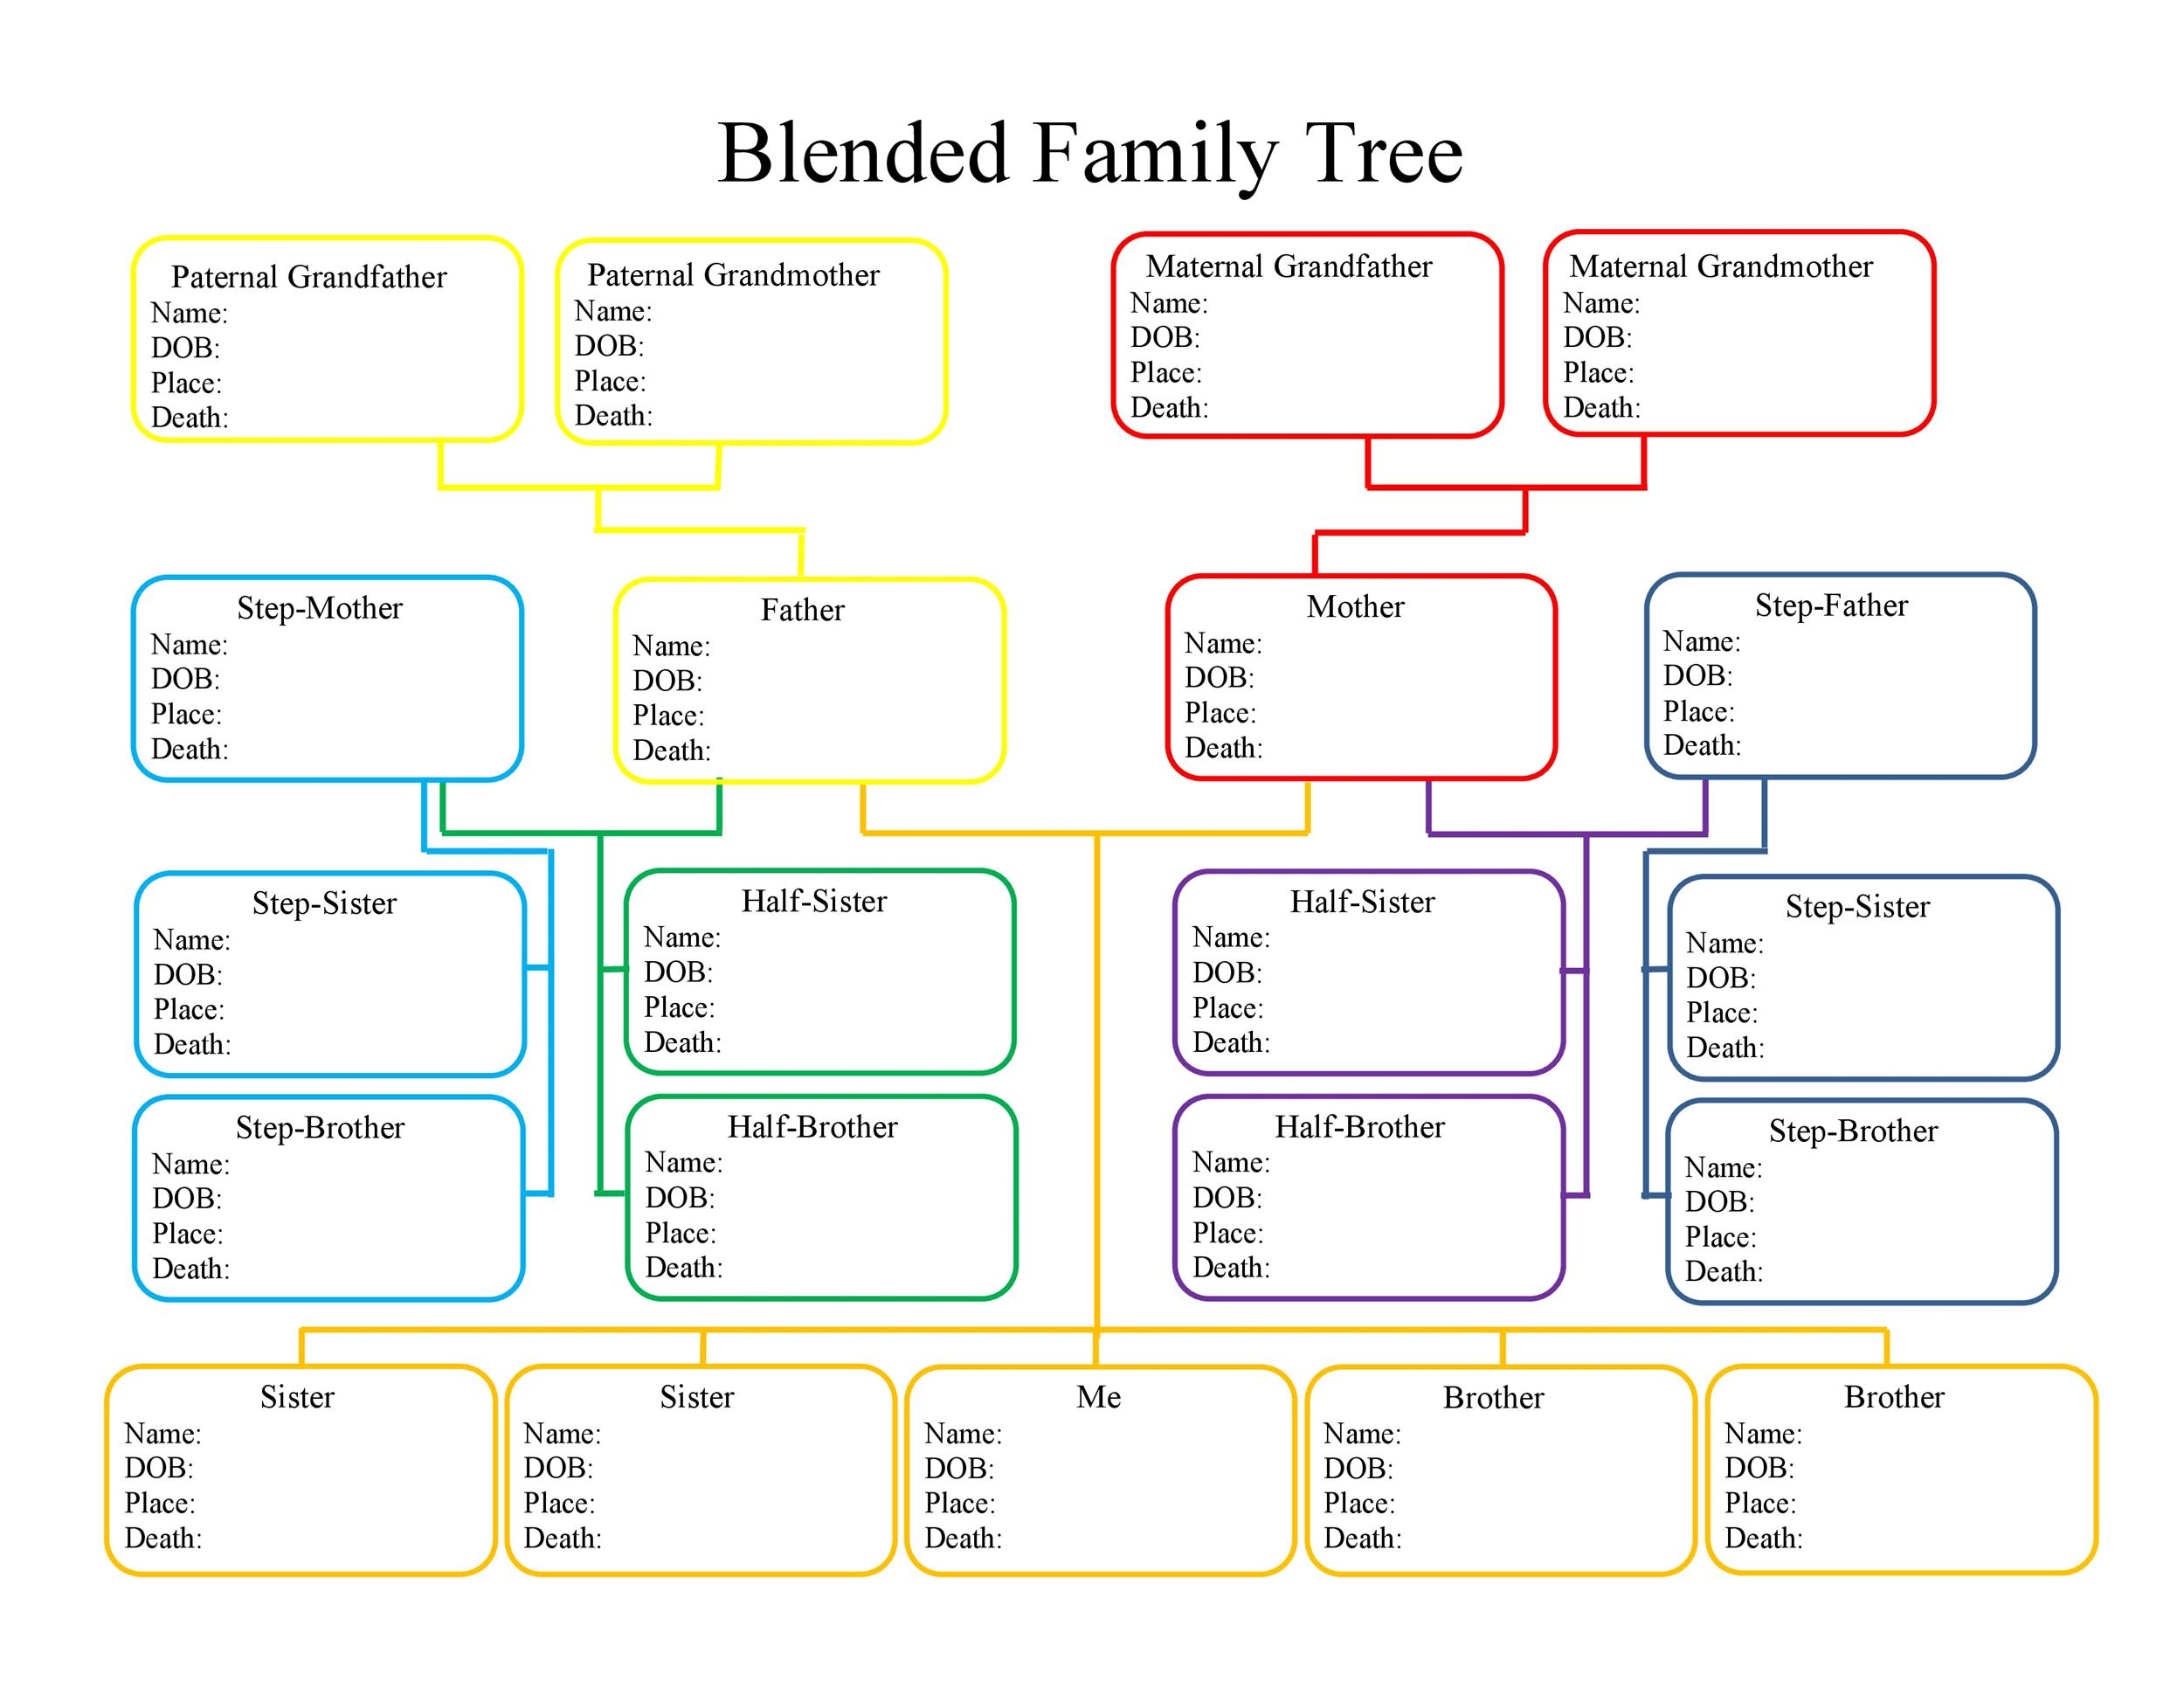 Family Tree Spreadsheet Ukrandiffusion